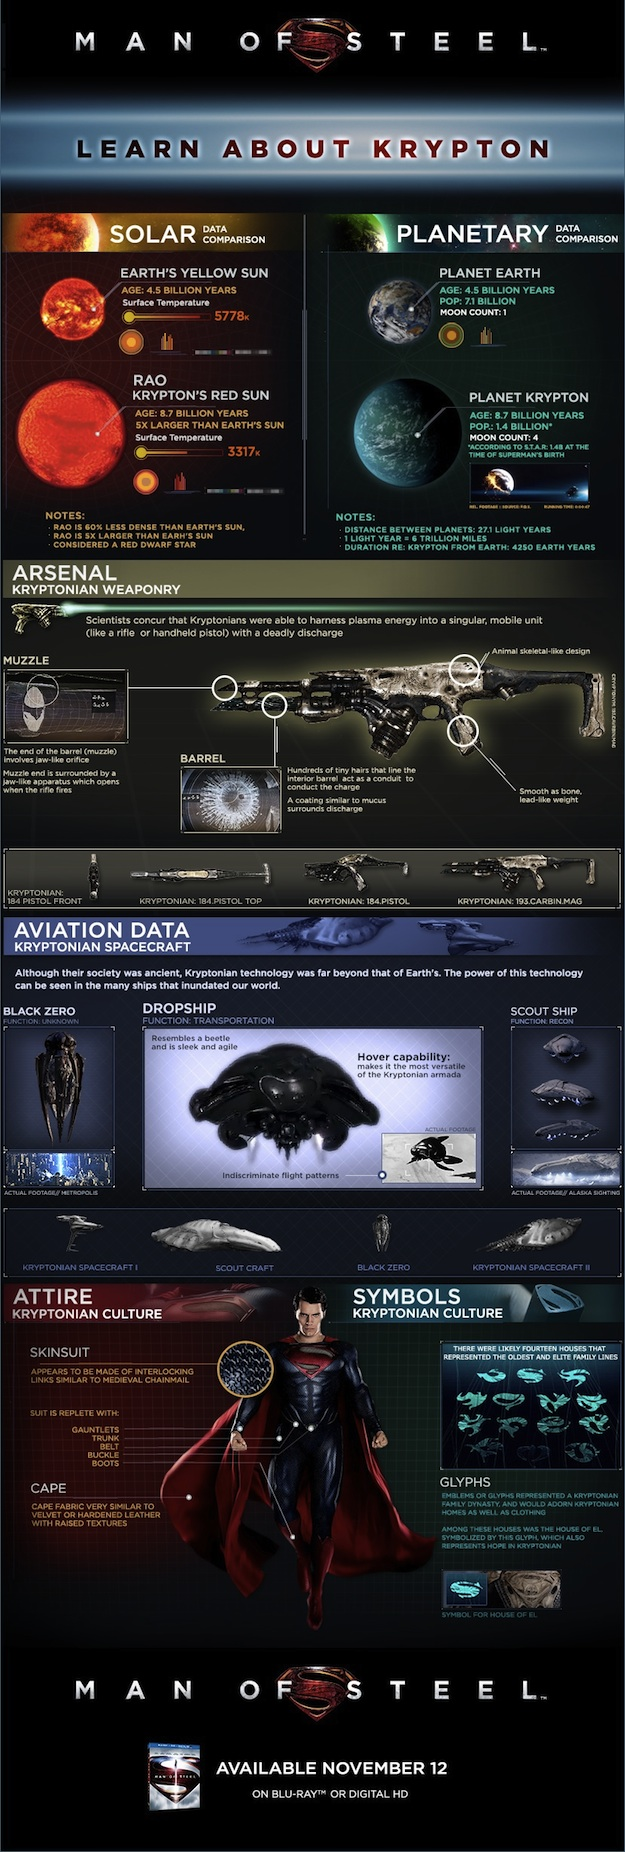 Learn About Krypton with a Man of Steel Infographic